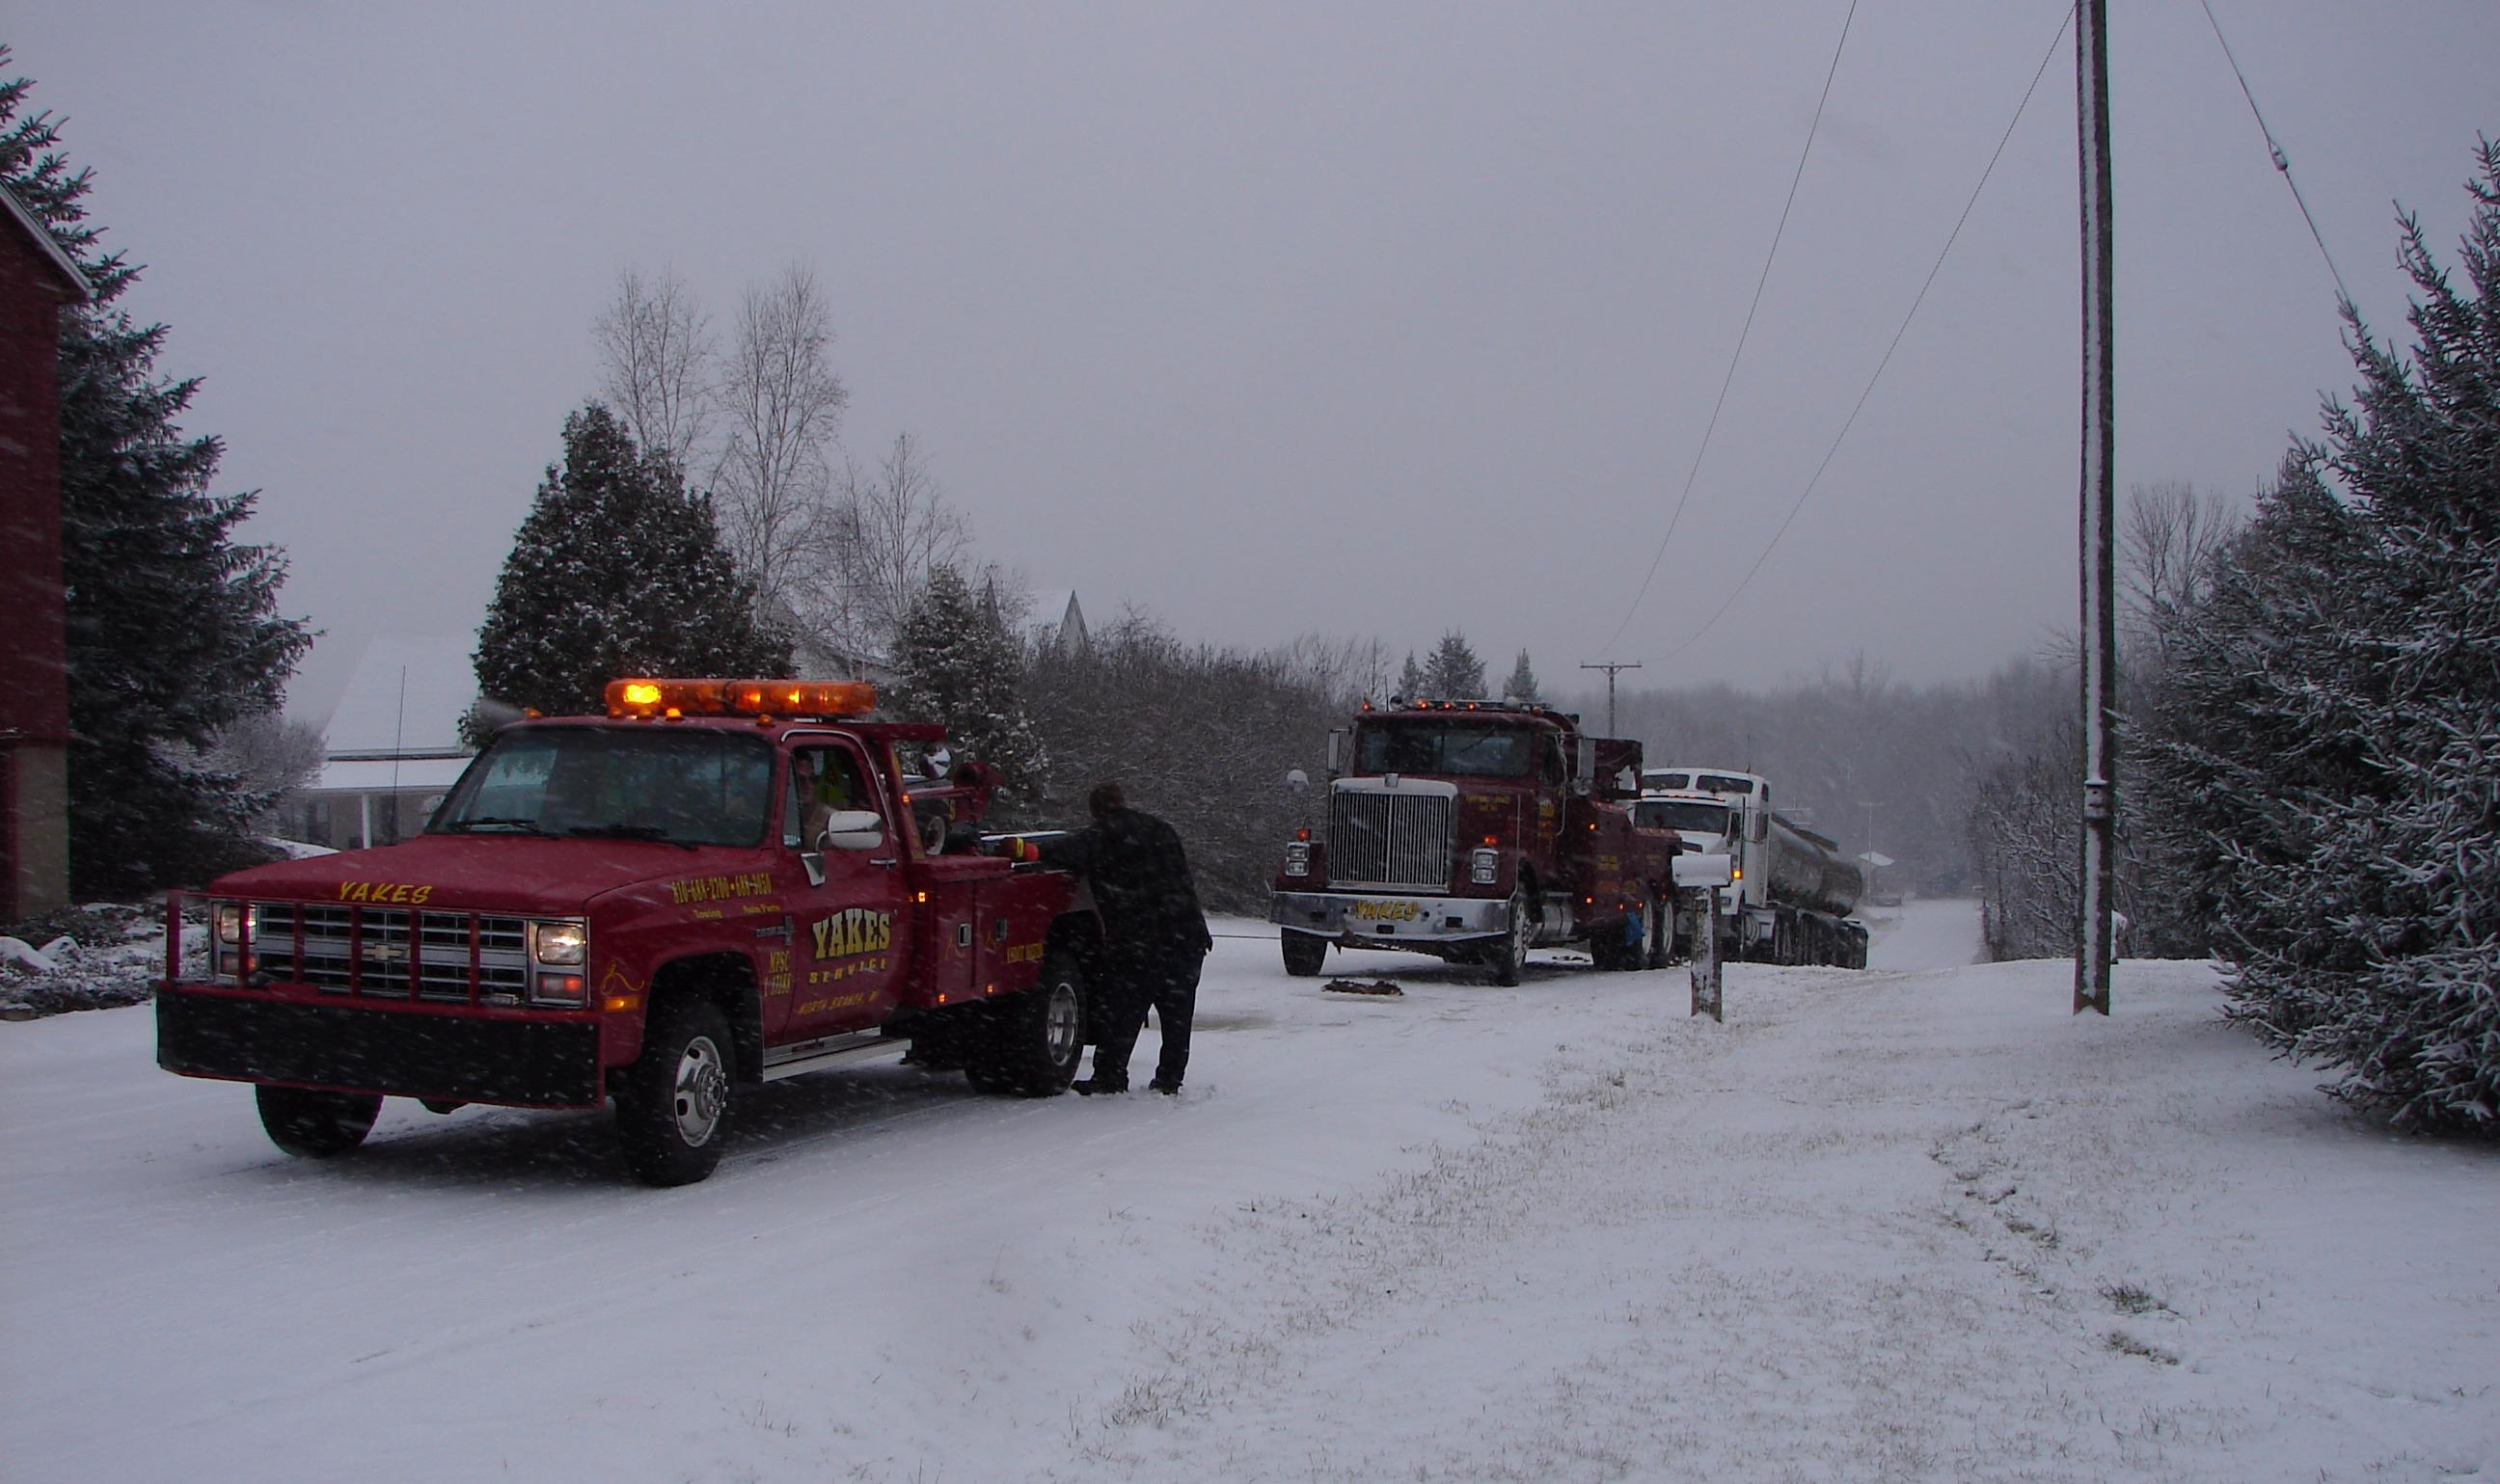 Yakes Towing Service image 3